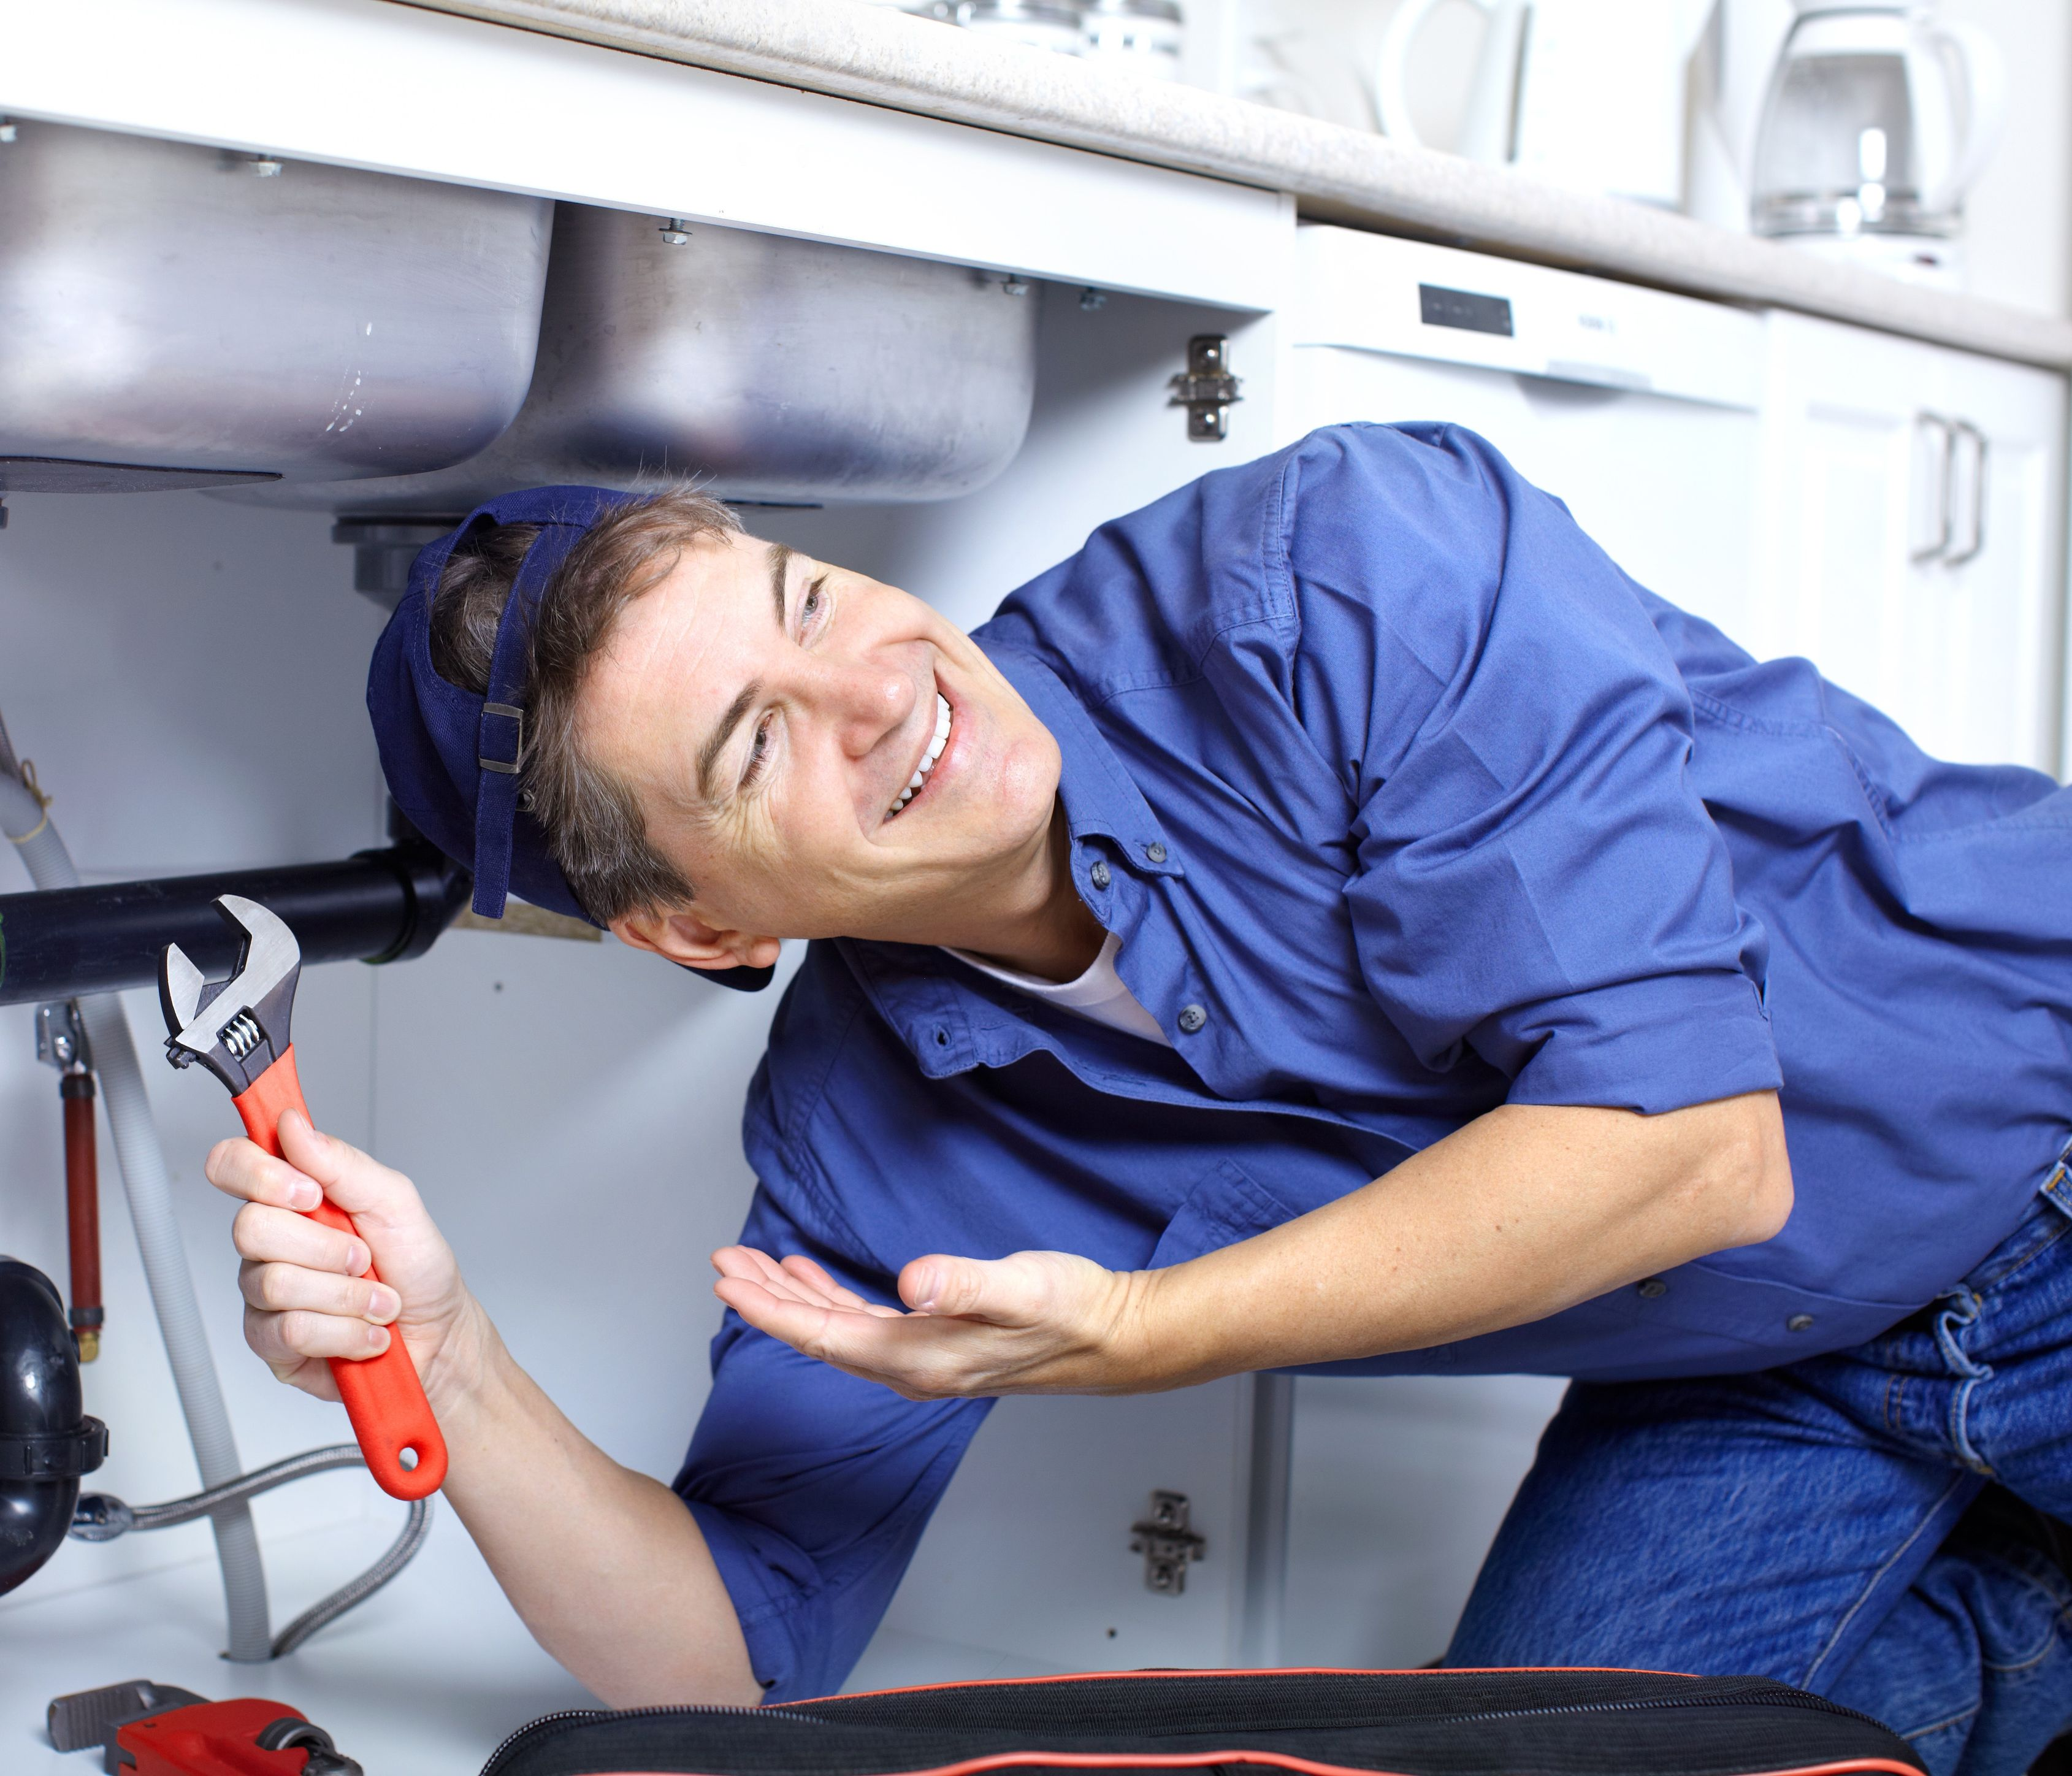 When to Call for Clogged Drain Repair from a Licensed Plumber